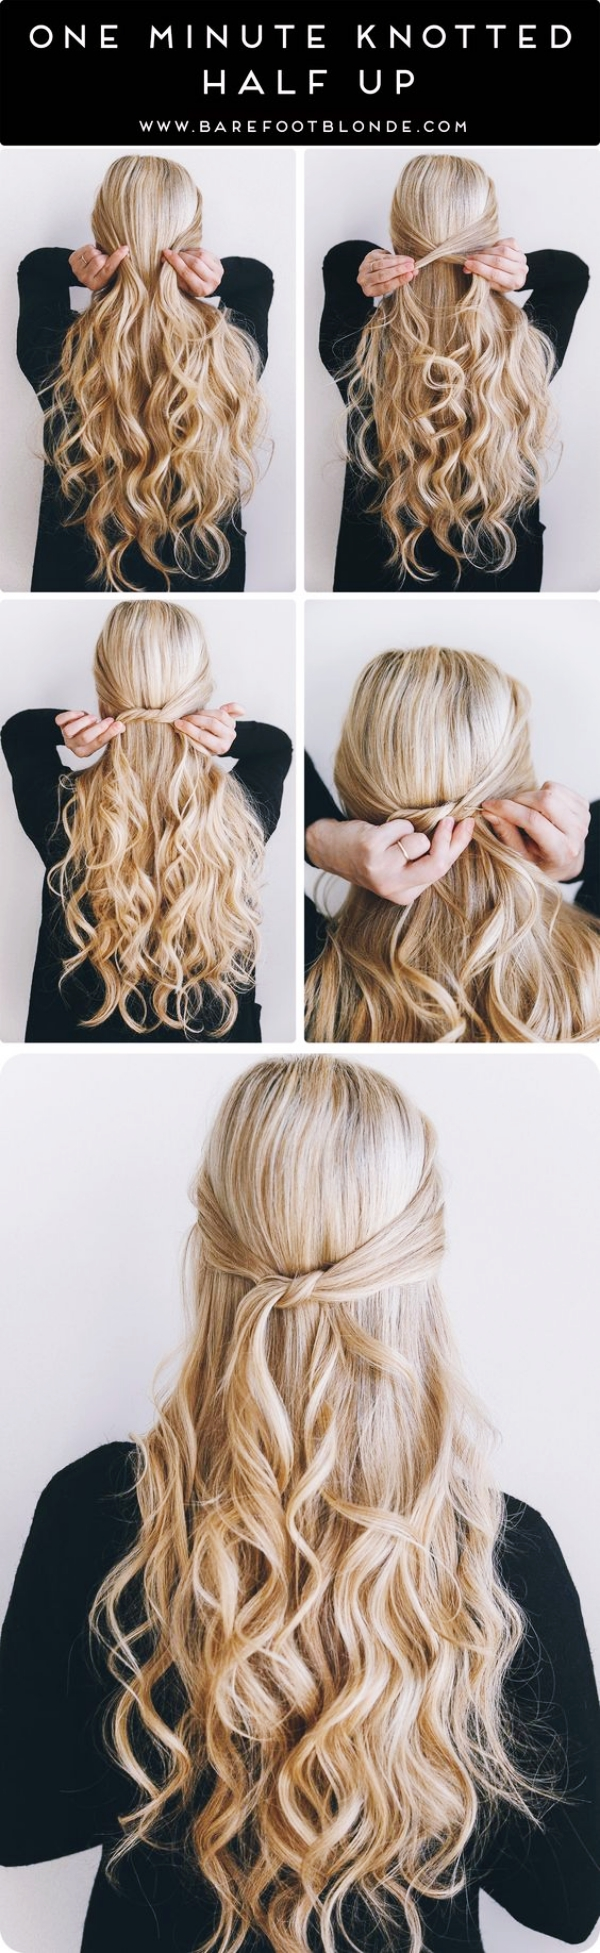 Greek-Goddess-Half-up-Half-Down-Hairstyles